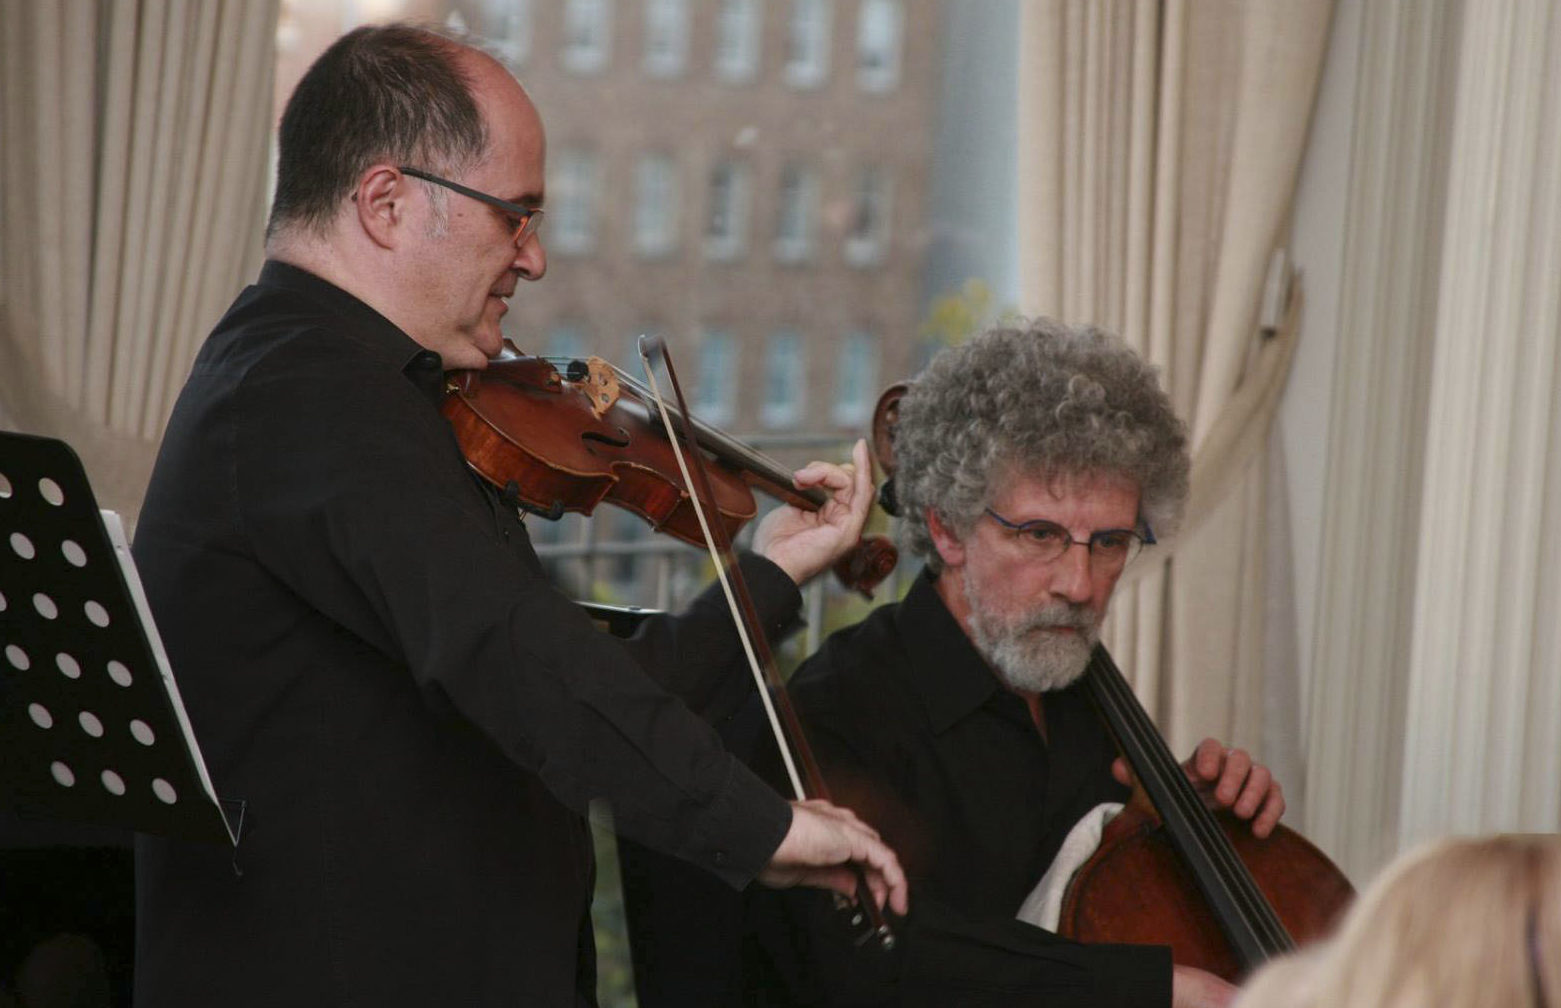 At the German Consulate in S.F., violinist Mikhail Shmidt and cellist Water Gray of the Seattle Symphony perform excerpts from the upcoming Music of Remembrance concert. (Photo/Gabriele Lange)